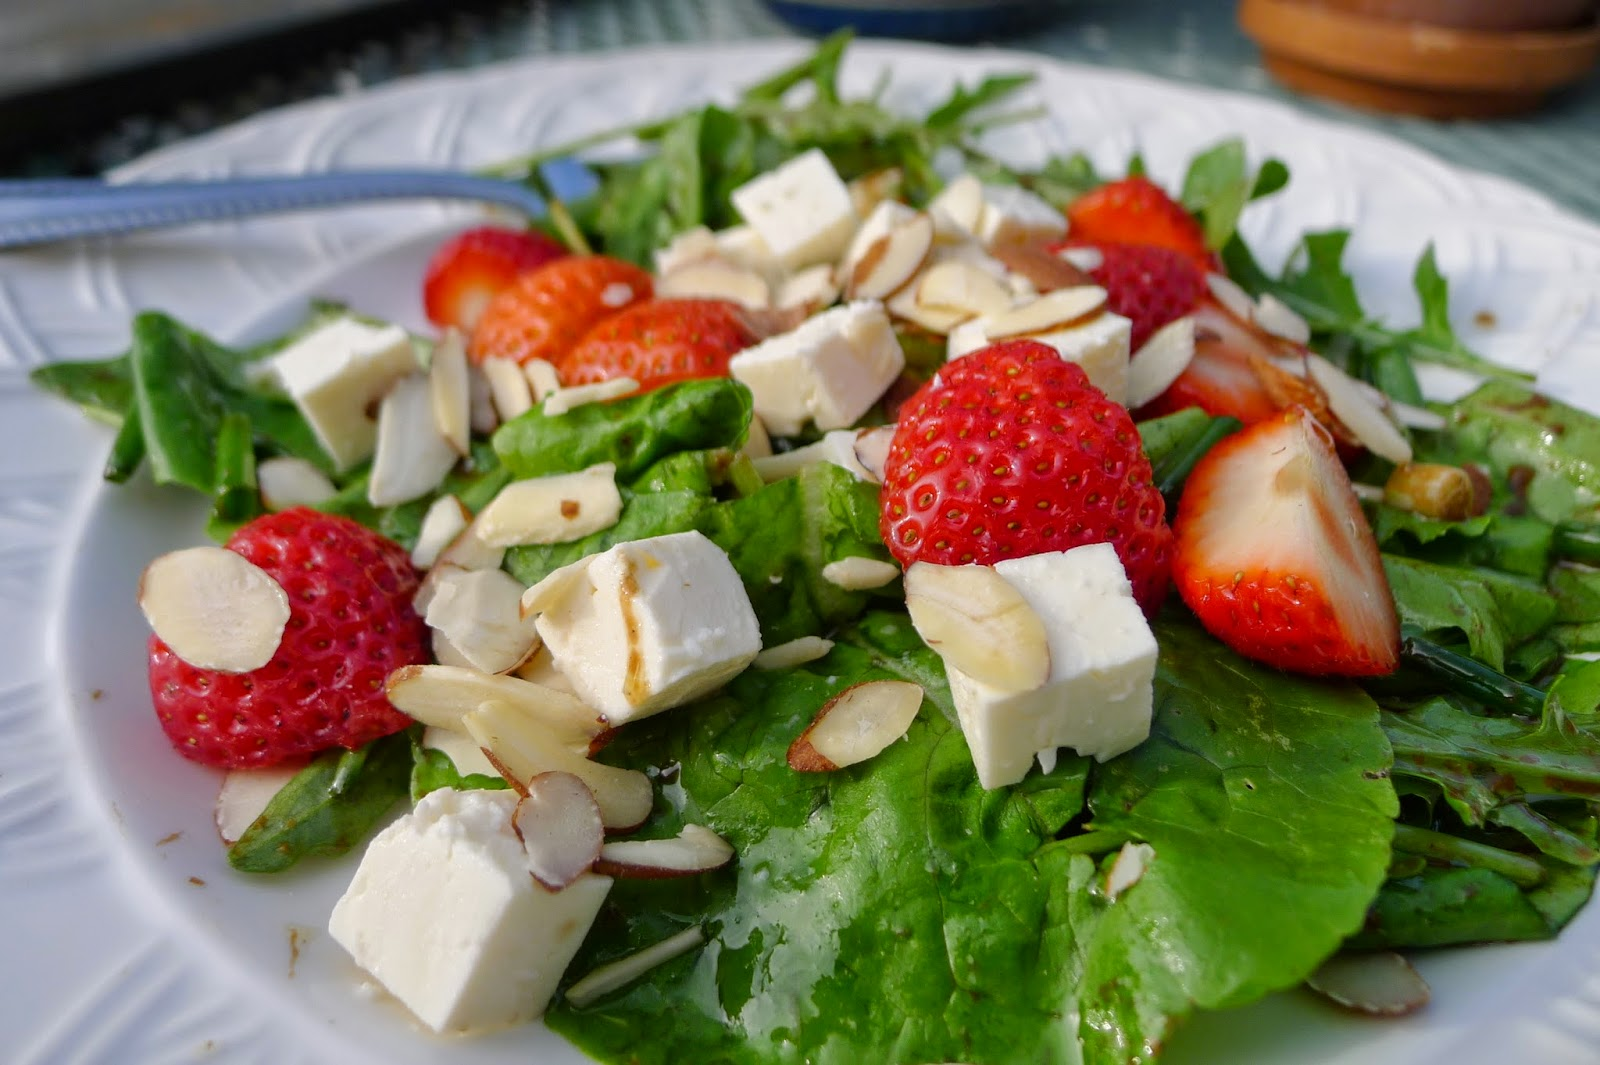 Strawberry and feta salad, recipes with strawberries